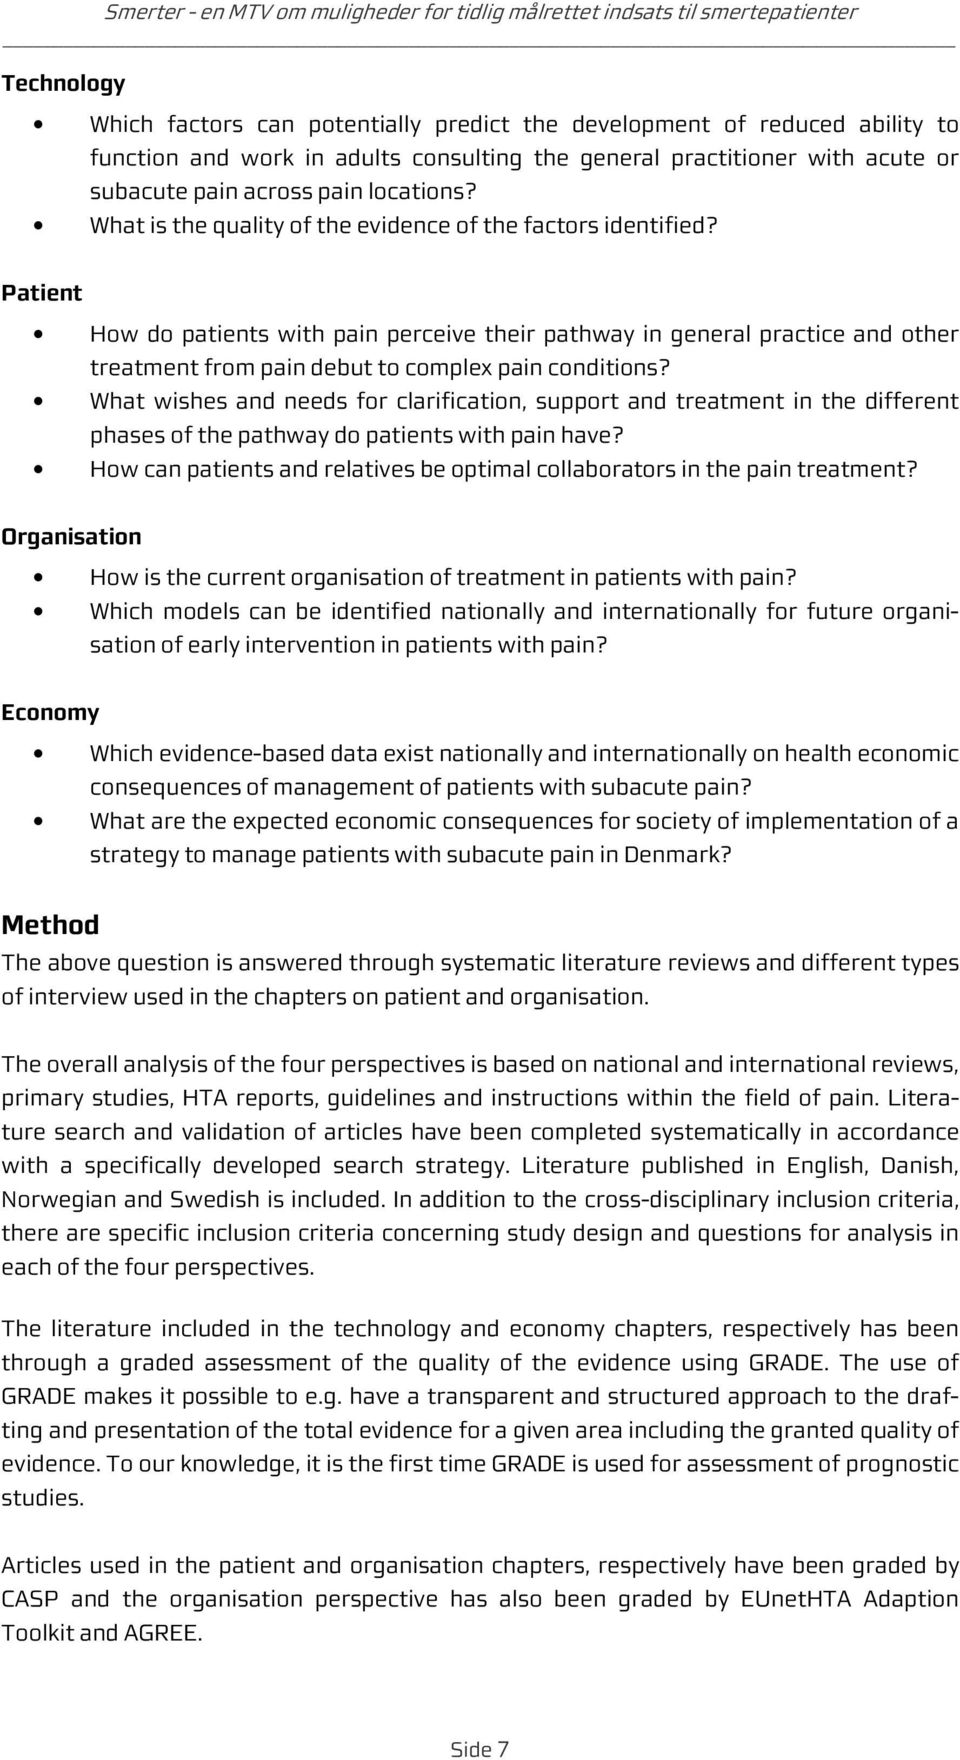 Patient How do patients with pain perceive their pathway in general practice and other treatment from pain debut to complex pain conditions?